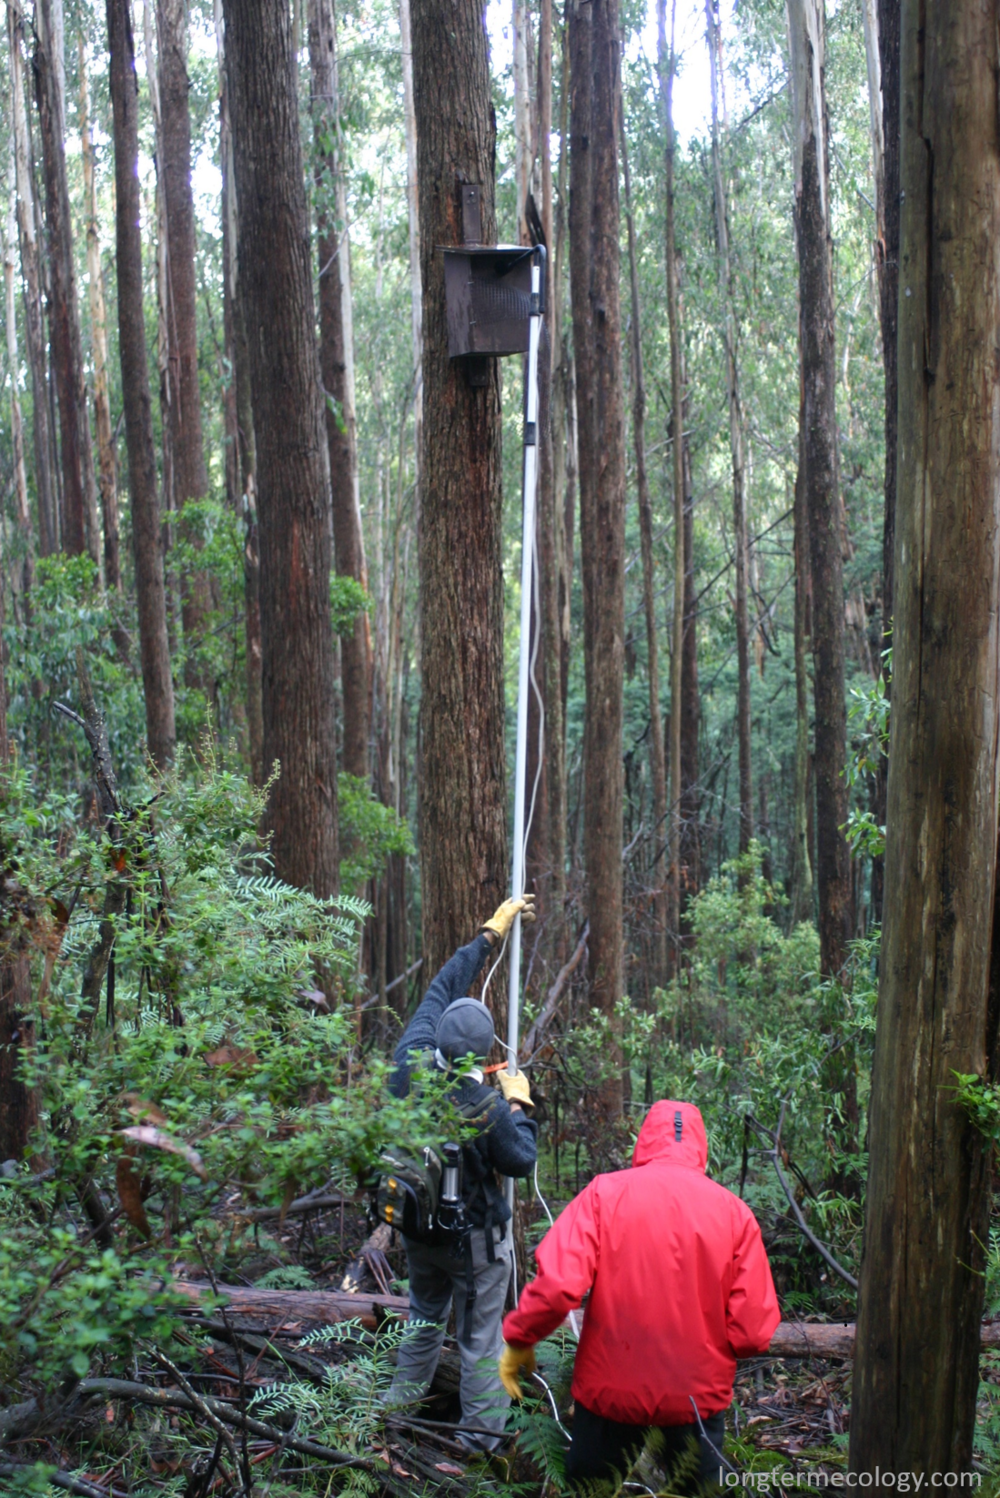 During a large nest box study in the 1990's, researchers could take more than two weeks to check all 96 monitored nest boxes.